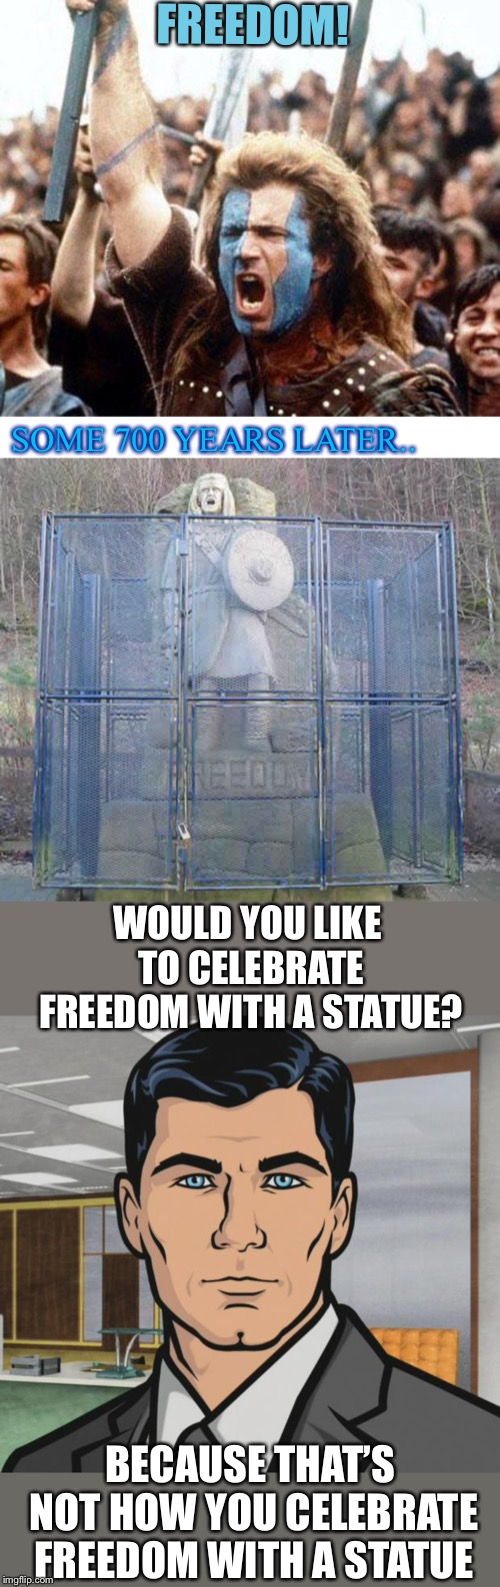 Great Scott, that's an ironic situation, William Wallace would be rolling in his grave  | FREEDOM! SOME 700 YEARS LATER.. WOULD YOU LIKE TO CELEBRATE FREEDOM WITH A STATUE? BECAUSE THAT'S NOT HOW YOU CELEBRATE FREEDOM WITH A STATU | image tagged in memes,archer,braveheart freedom,statue of liberty,or is it,jail | made w/ Imgflip meme maker